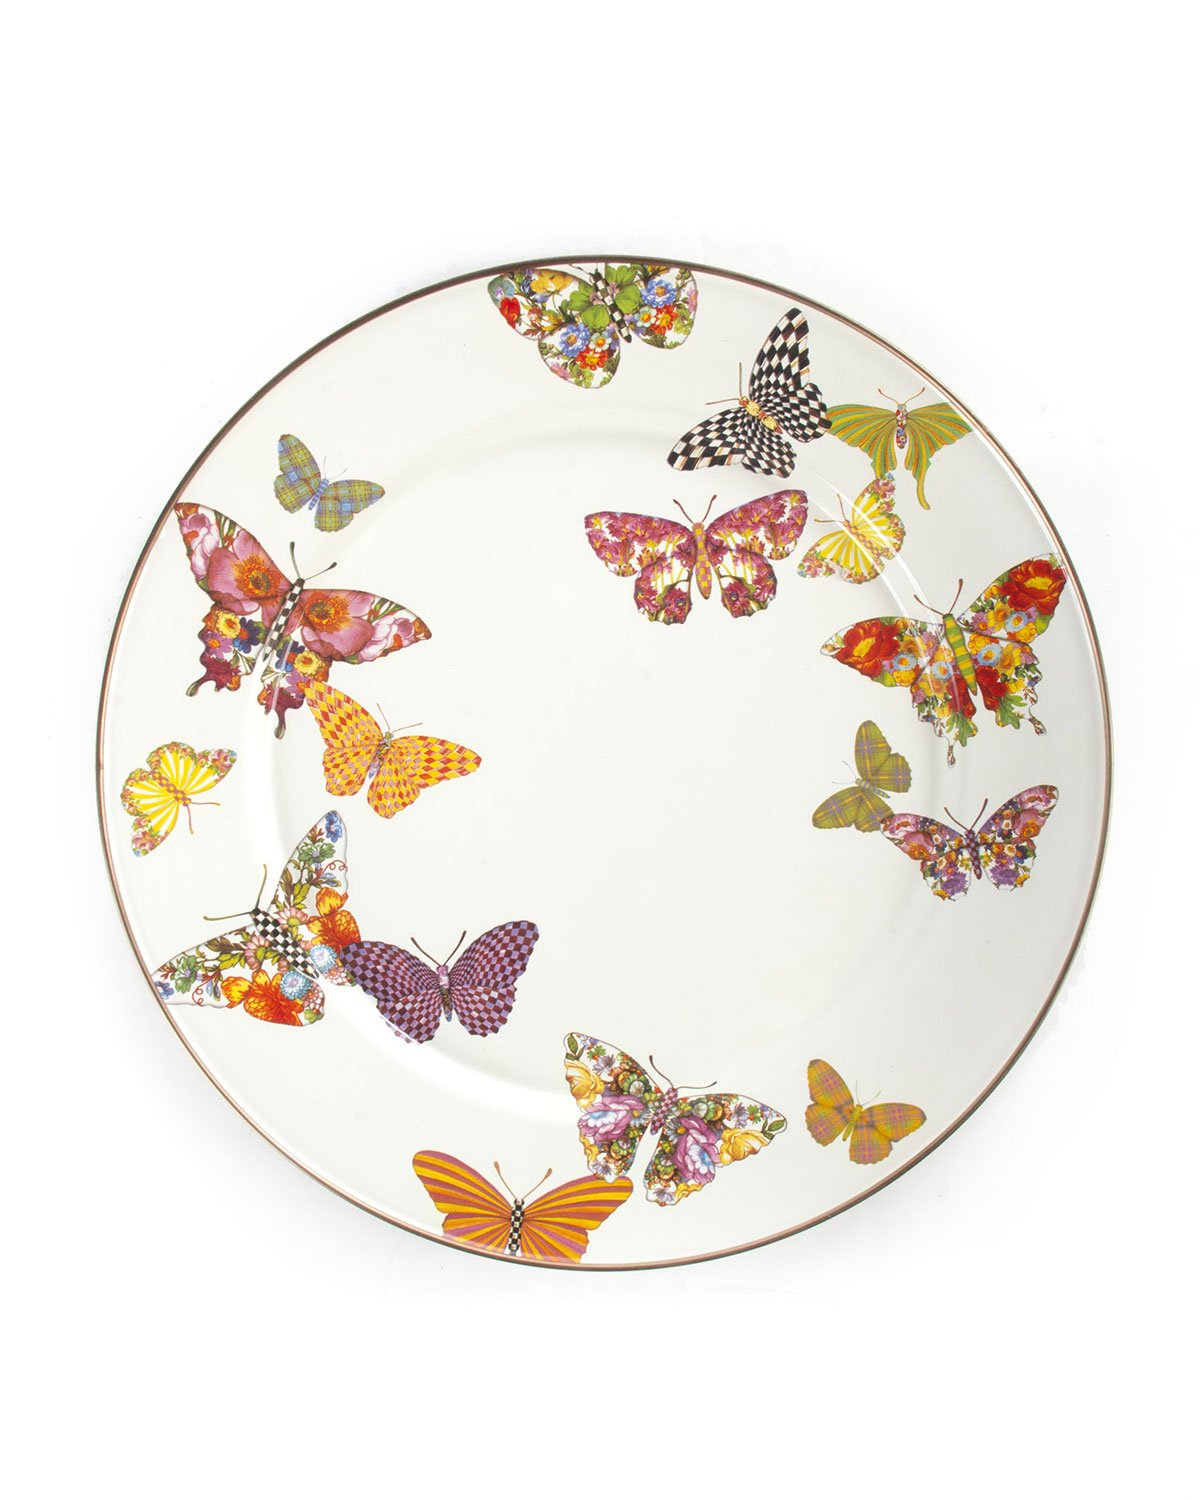 MacKenzie-Childs Butterfly Garden Enamel Charger Plate White